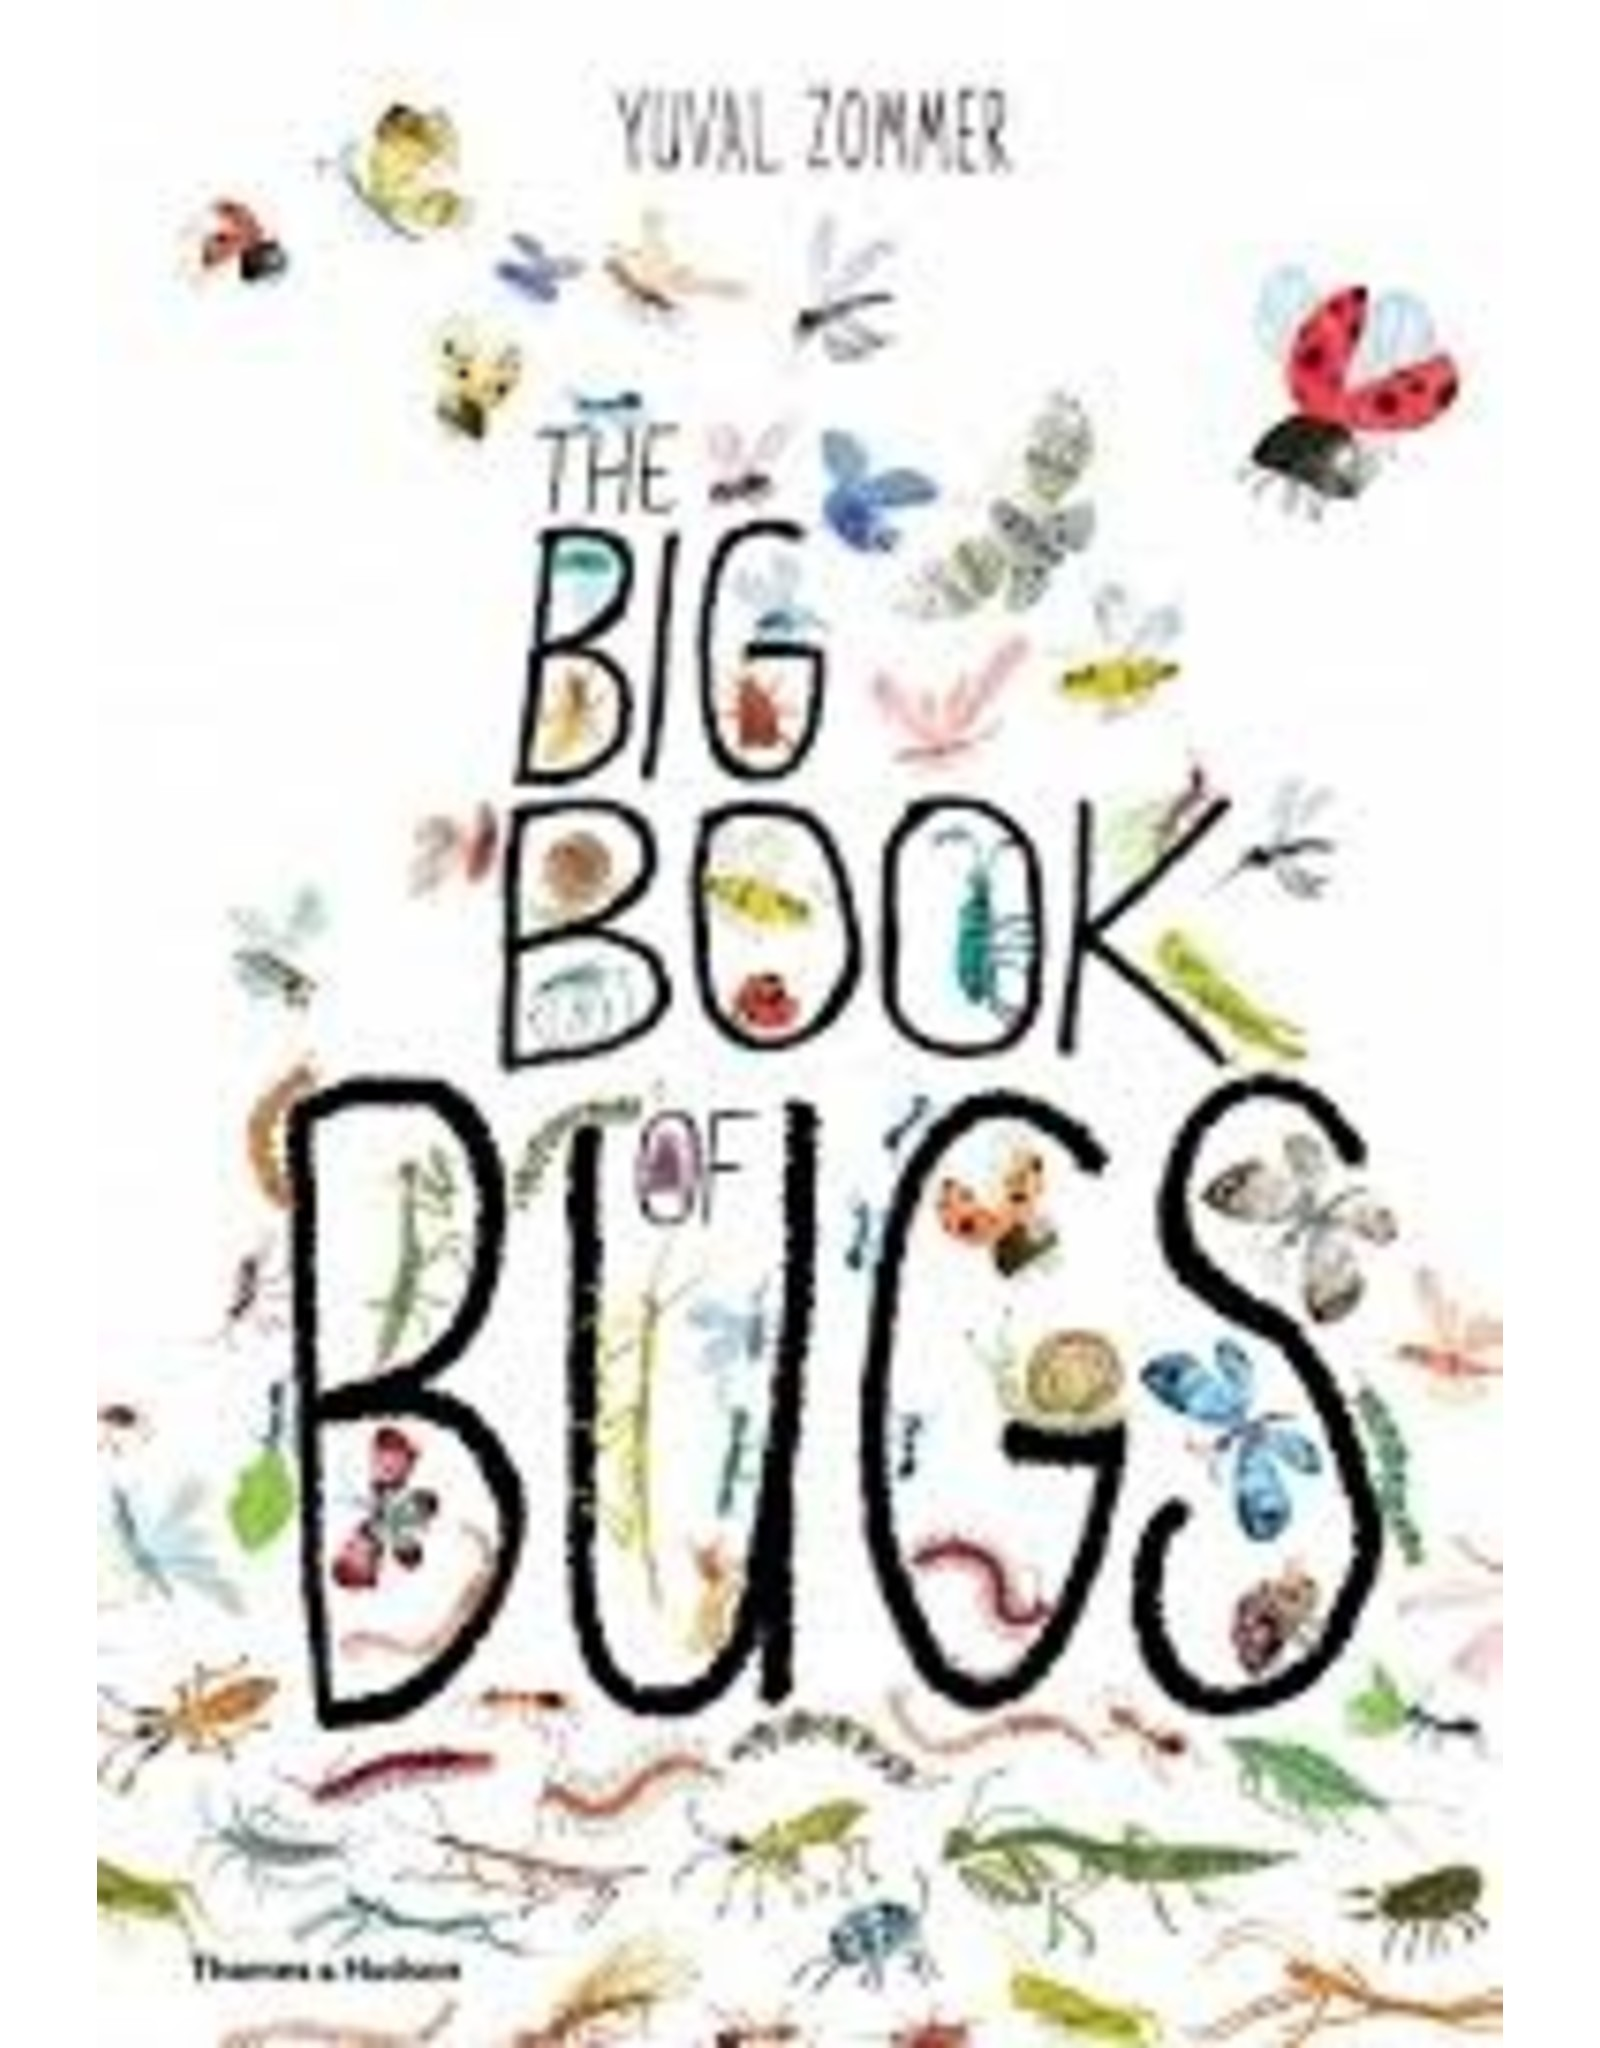 Books The Big Sticker Book of Bugs by Yuzal Zommer